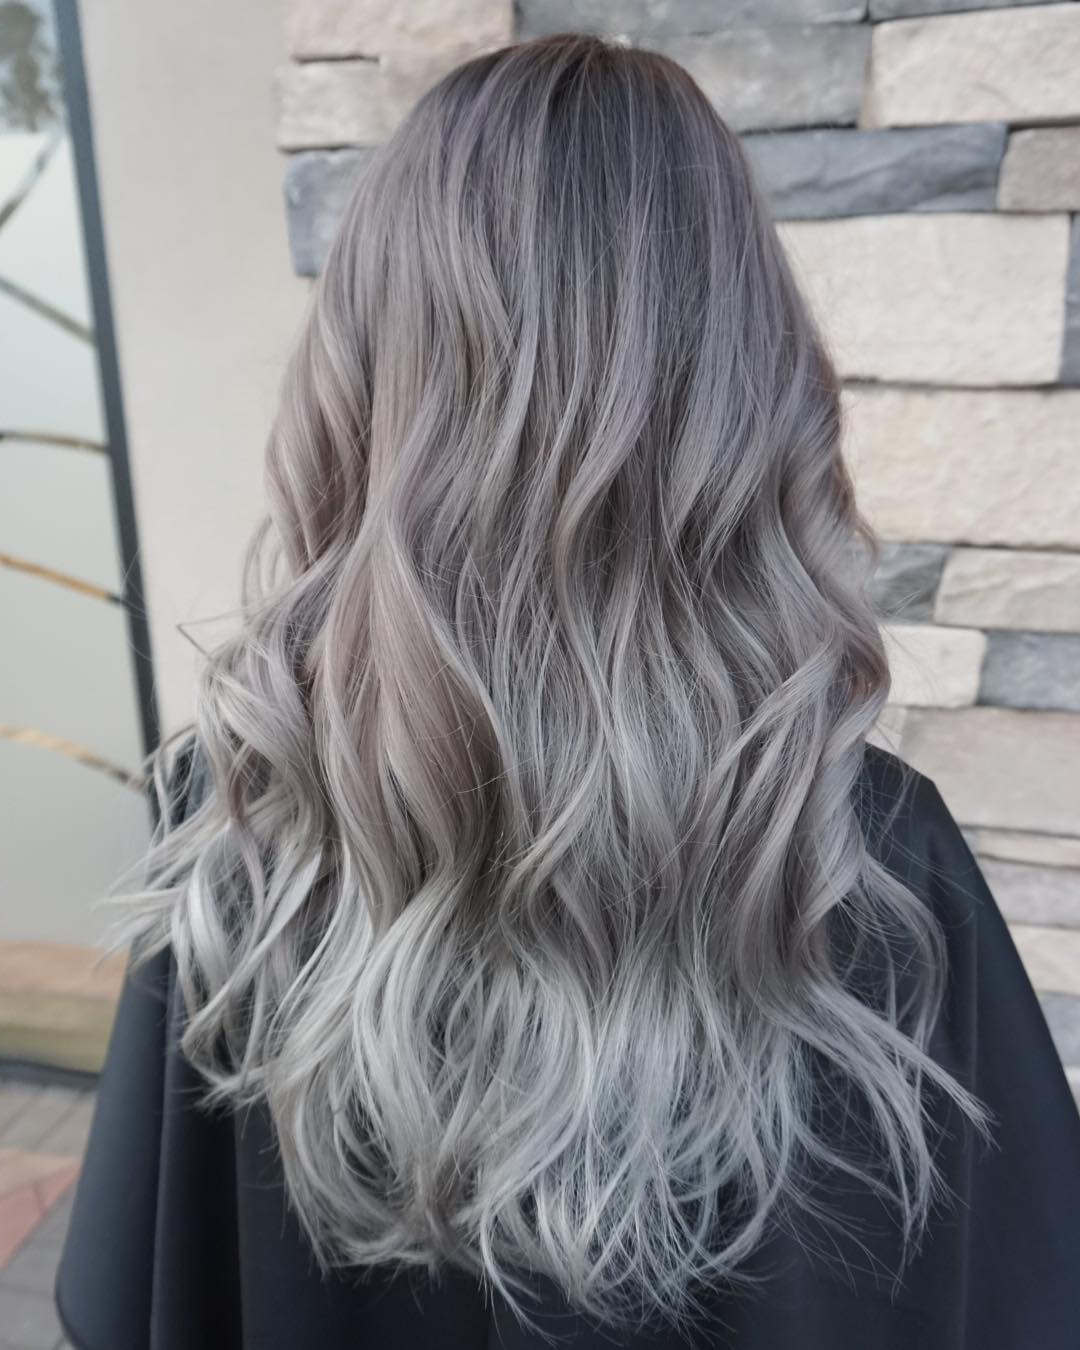 Trendy Ash Bronde Ombre Hairstyles Inside 50 Hottest Ombre Hair Color Ideas For 2018 – Ombre (View 18 of 20)